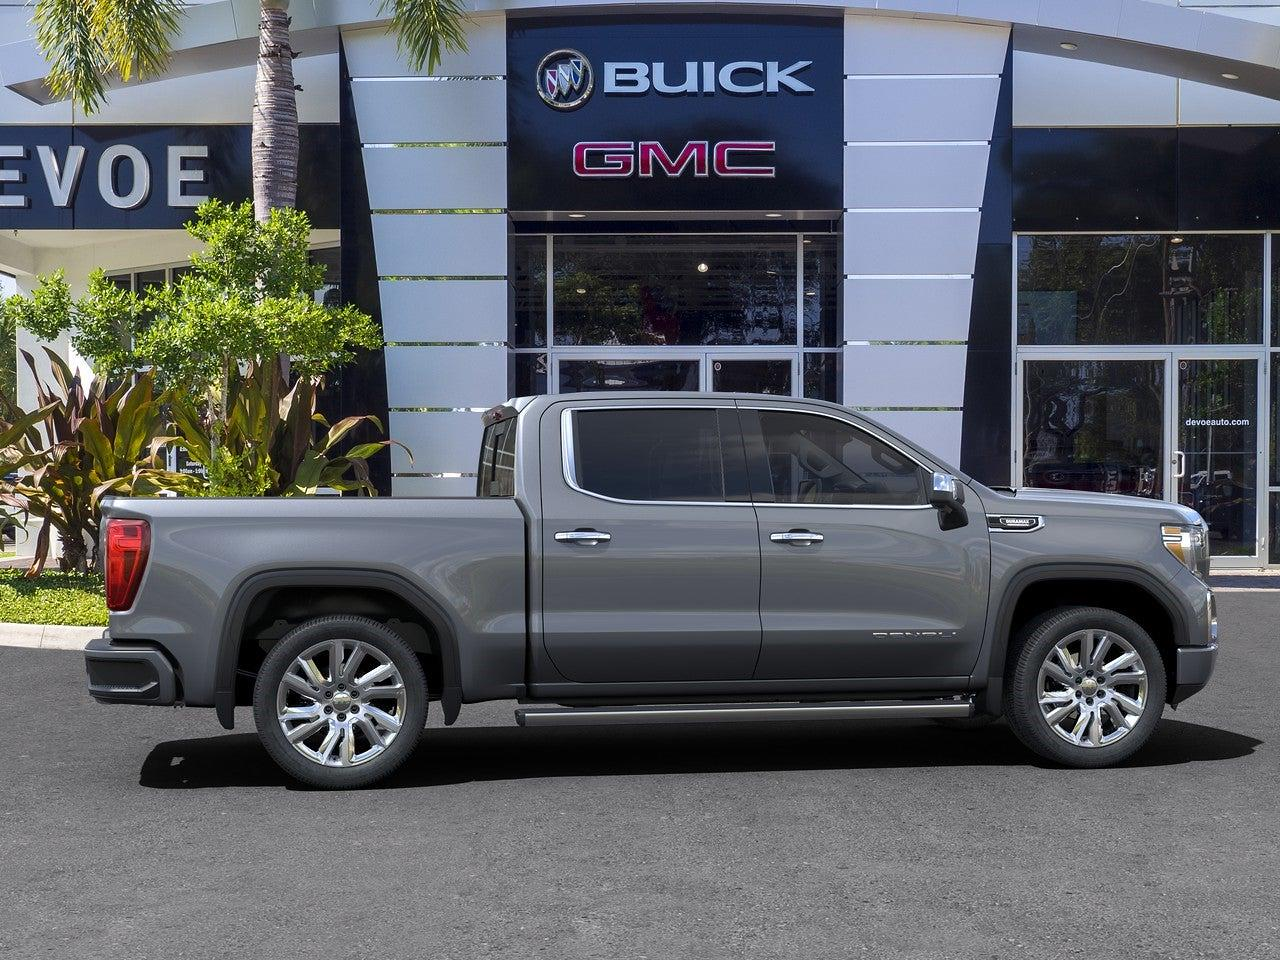 2021 GMC Sierra 1500 Crew Cab 4x2, Pickup #T21147 - photo 9